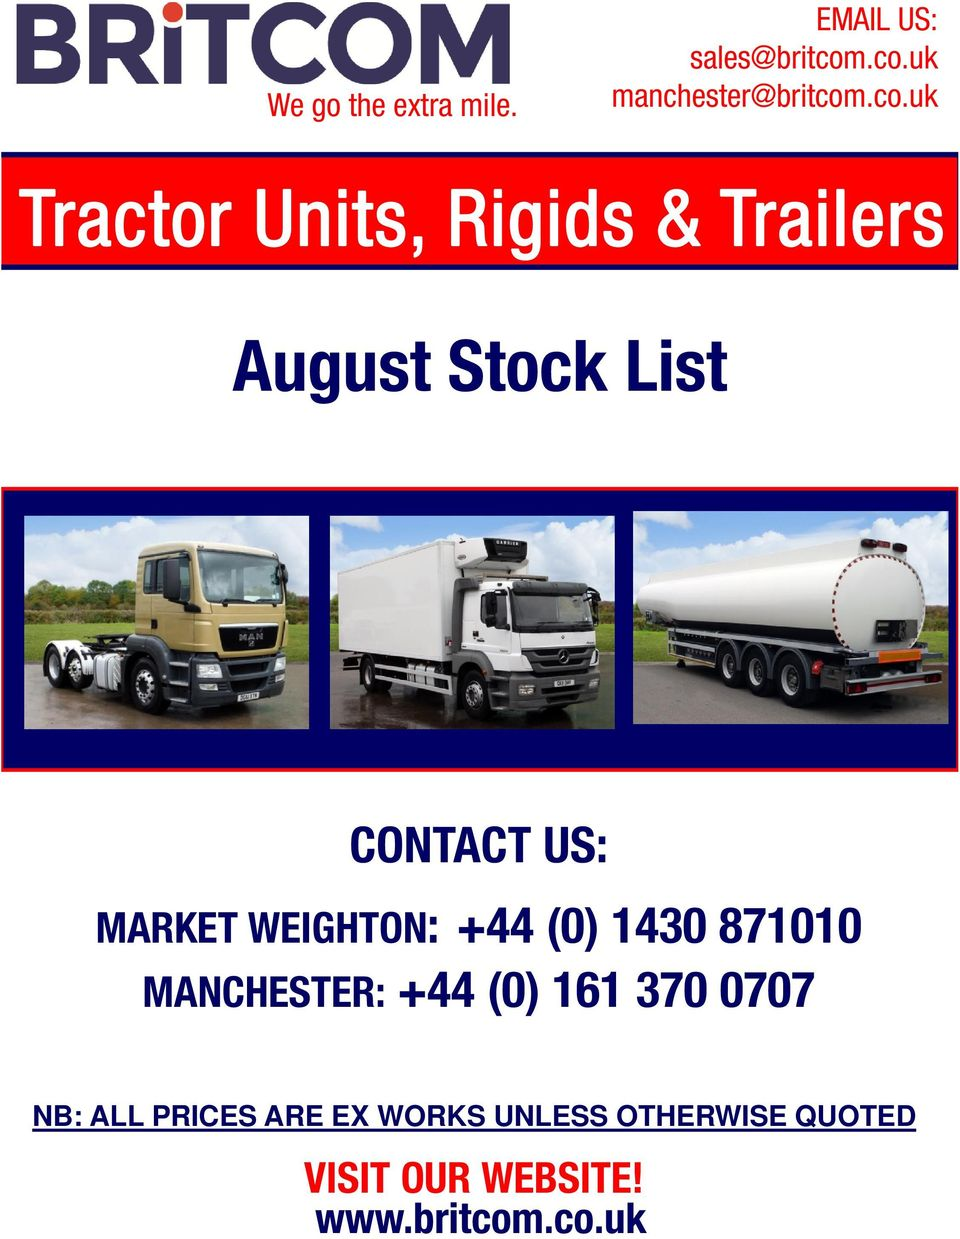 Stock List CONTACT US: MARKET WEIGHTON: +44 (0) 1430 871010 MANCHESTER: